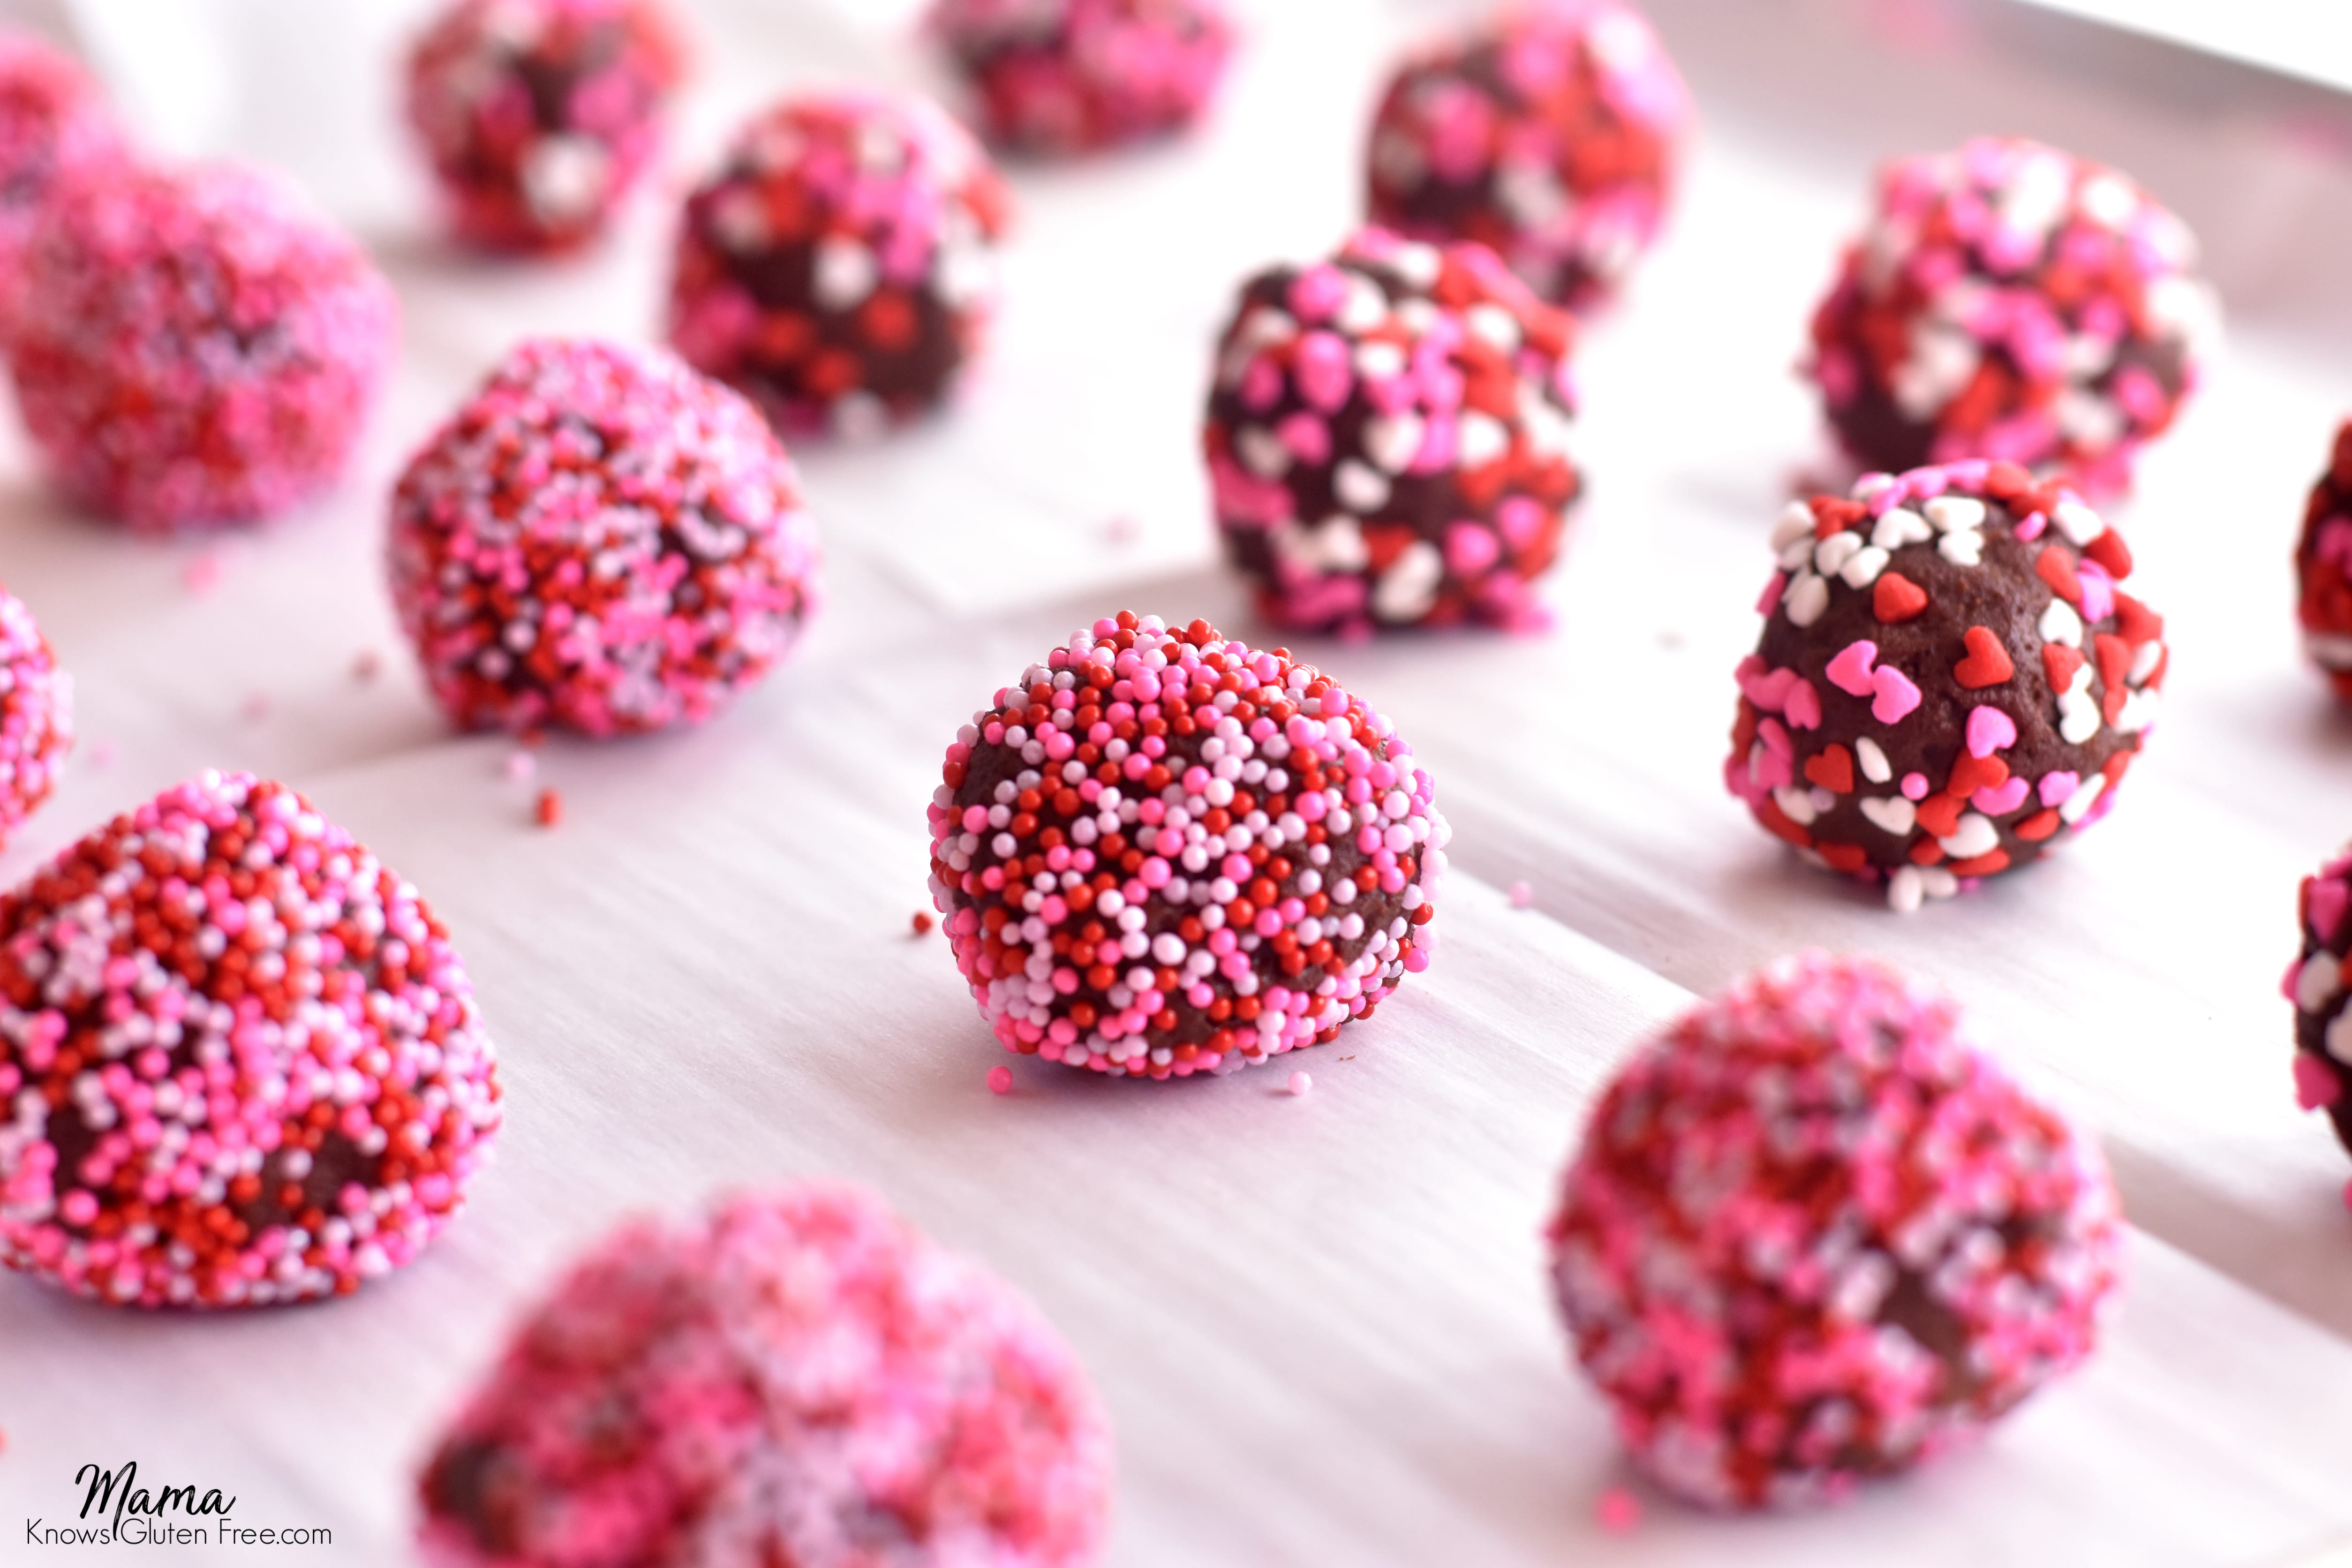 gluten-free chocolate kiss cookie balls covered in sprinkles on a cookie sheet